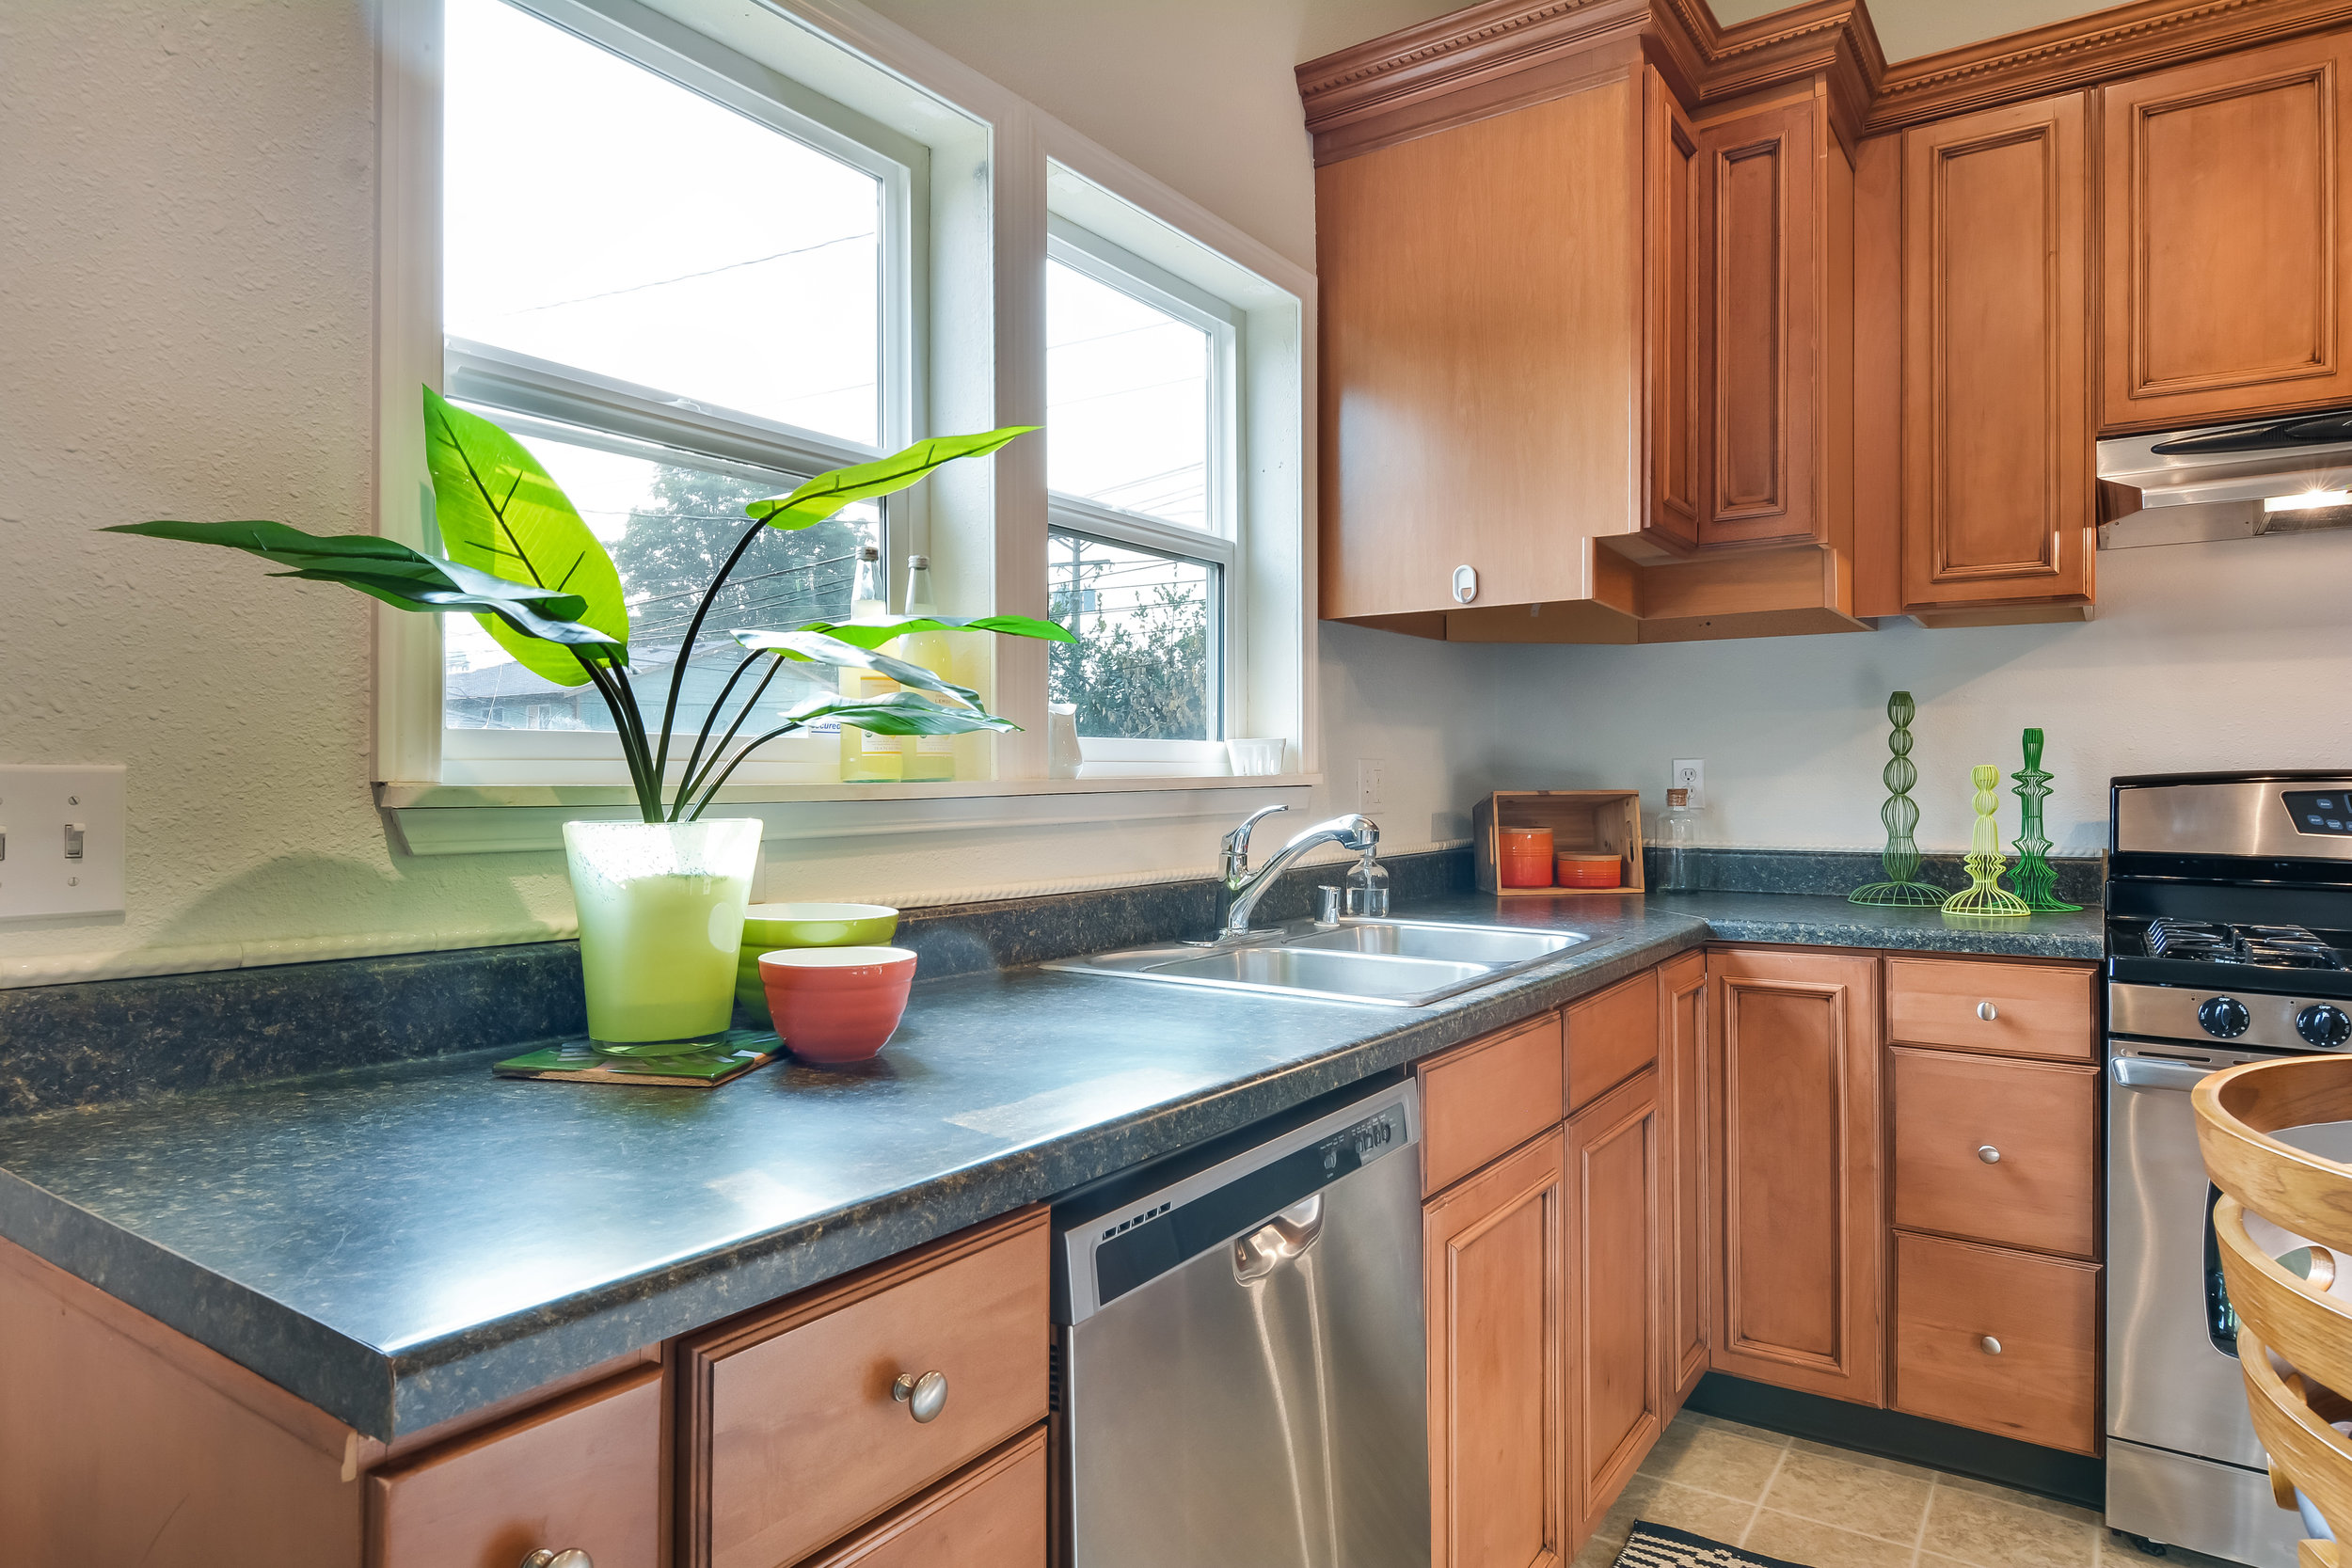 Stainless double sink and bright eastward facing windows look out over the back yard.